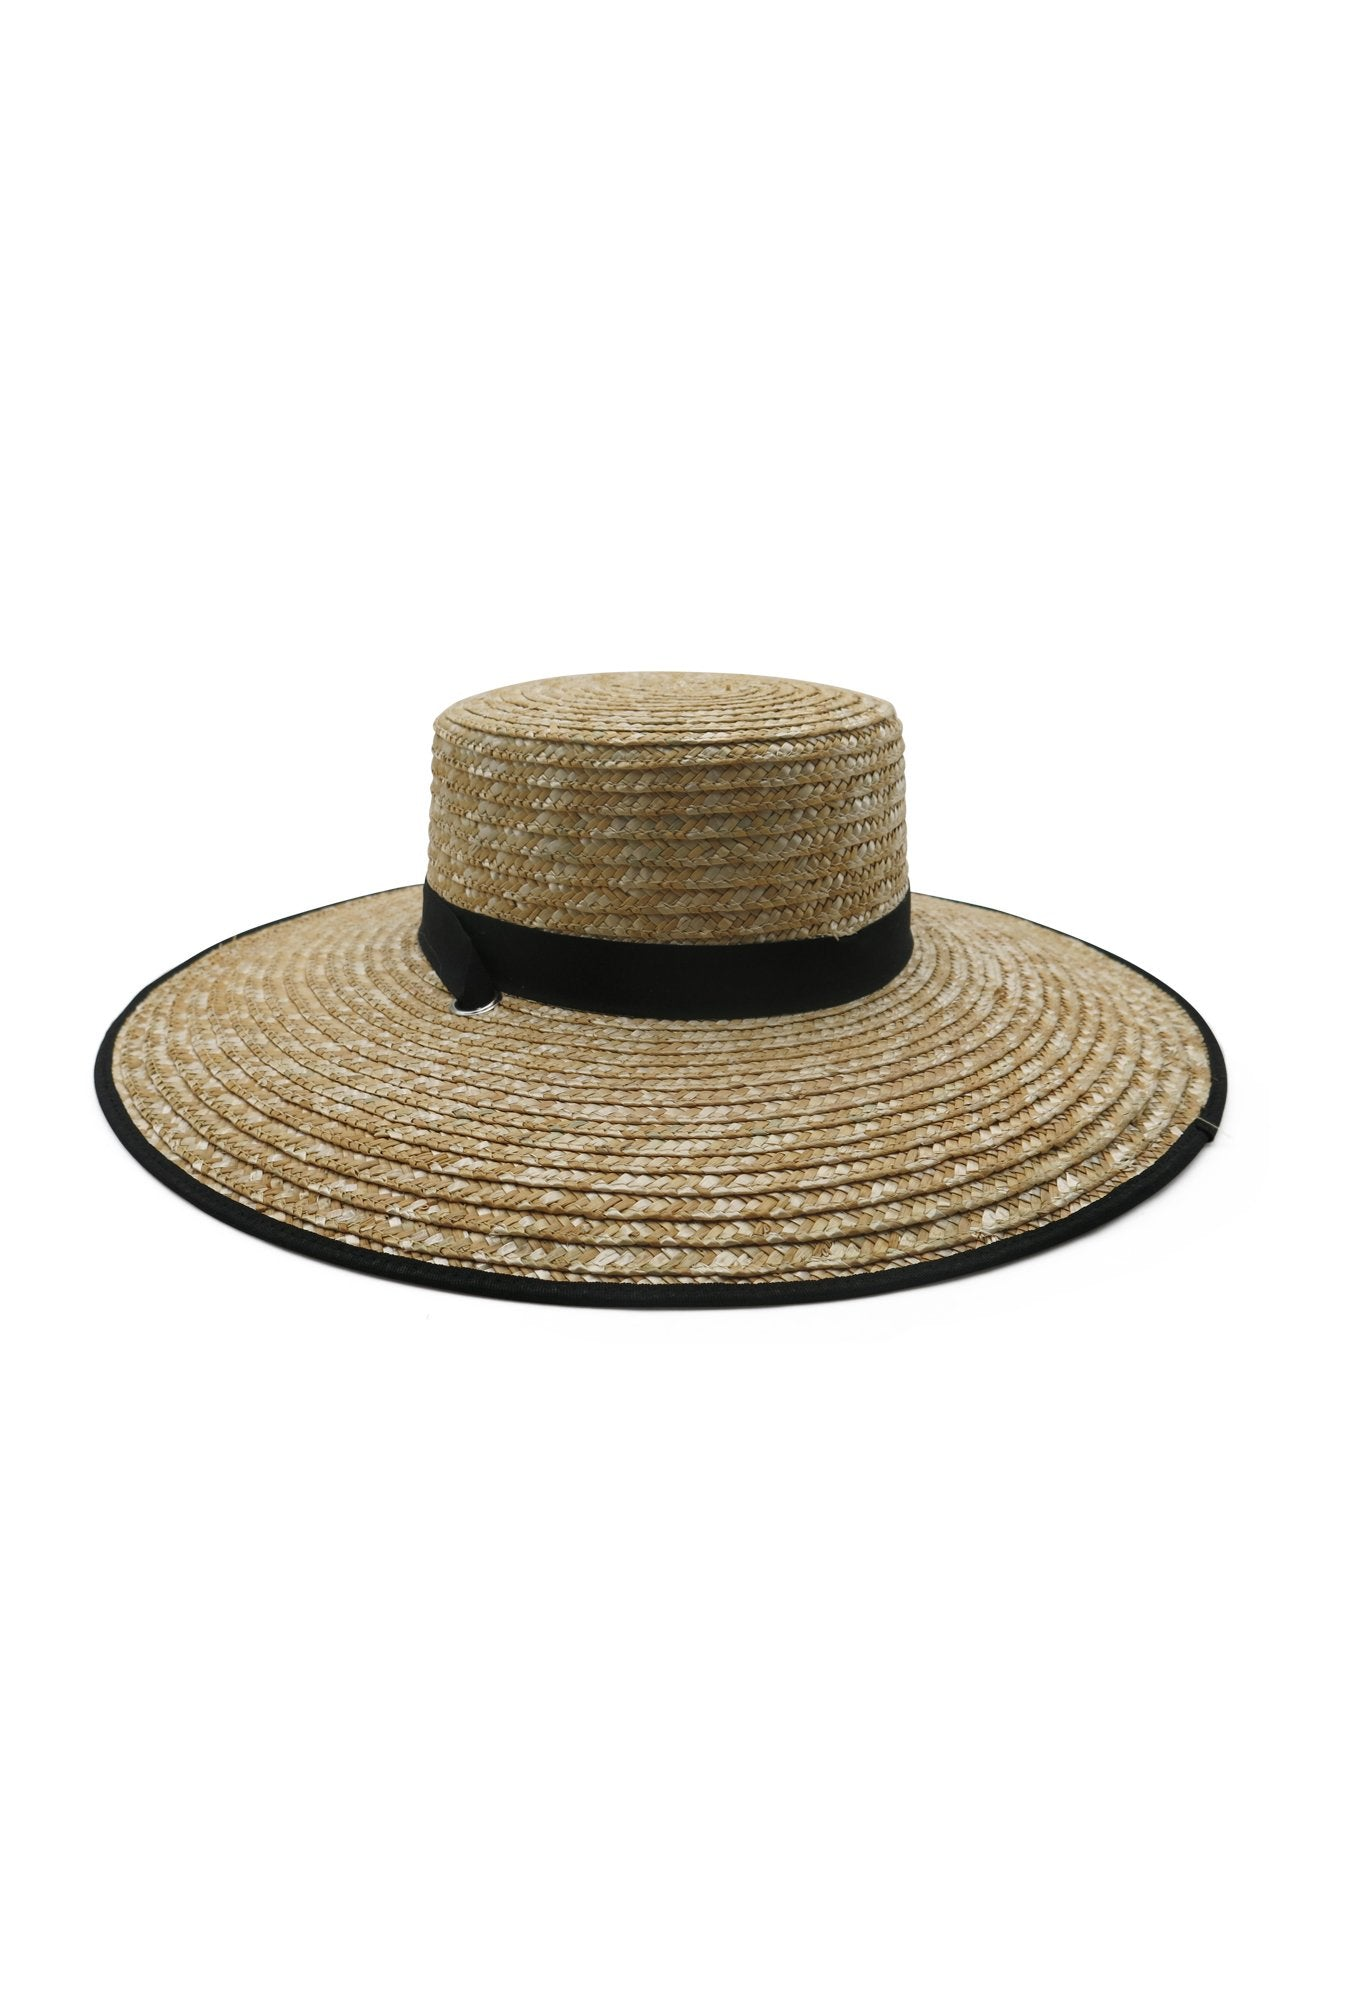 Ace of Something - Roseum Boater Hat